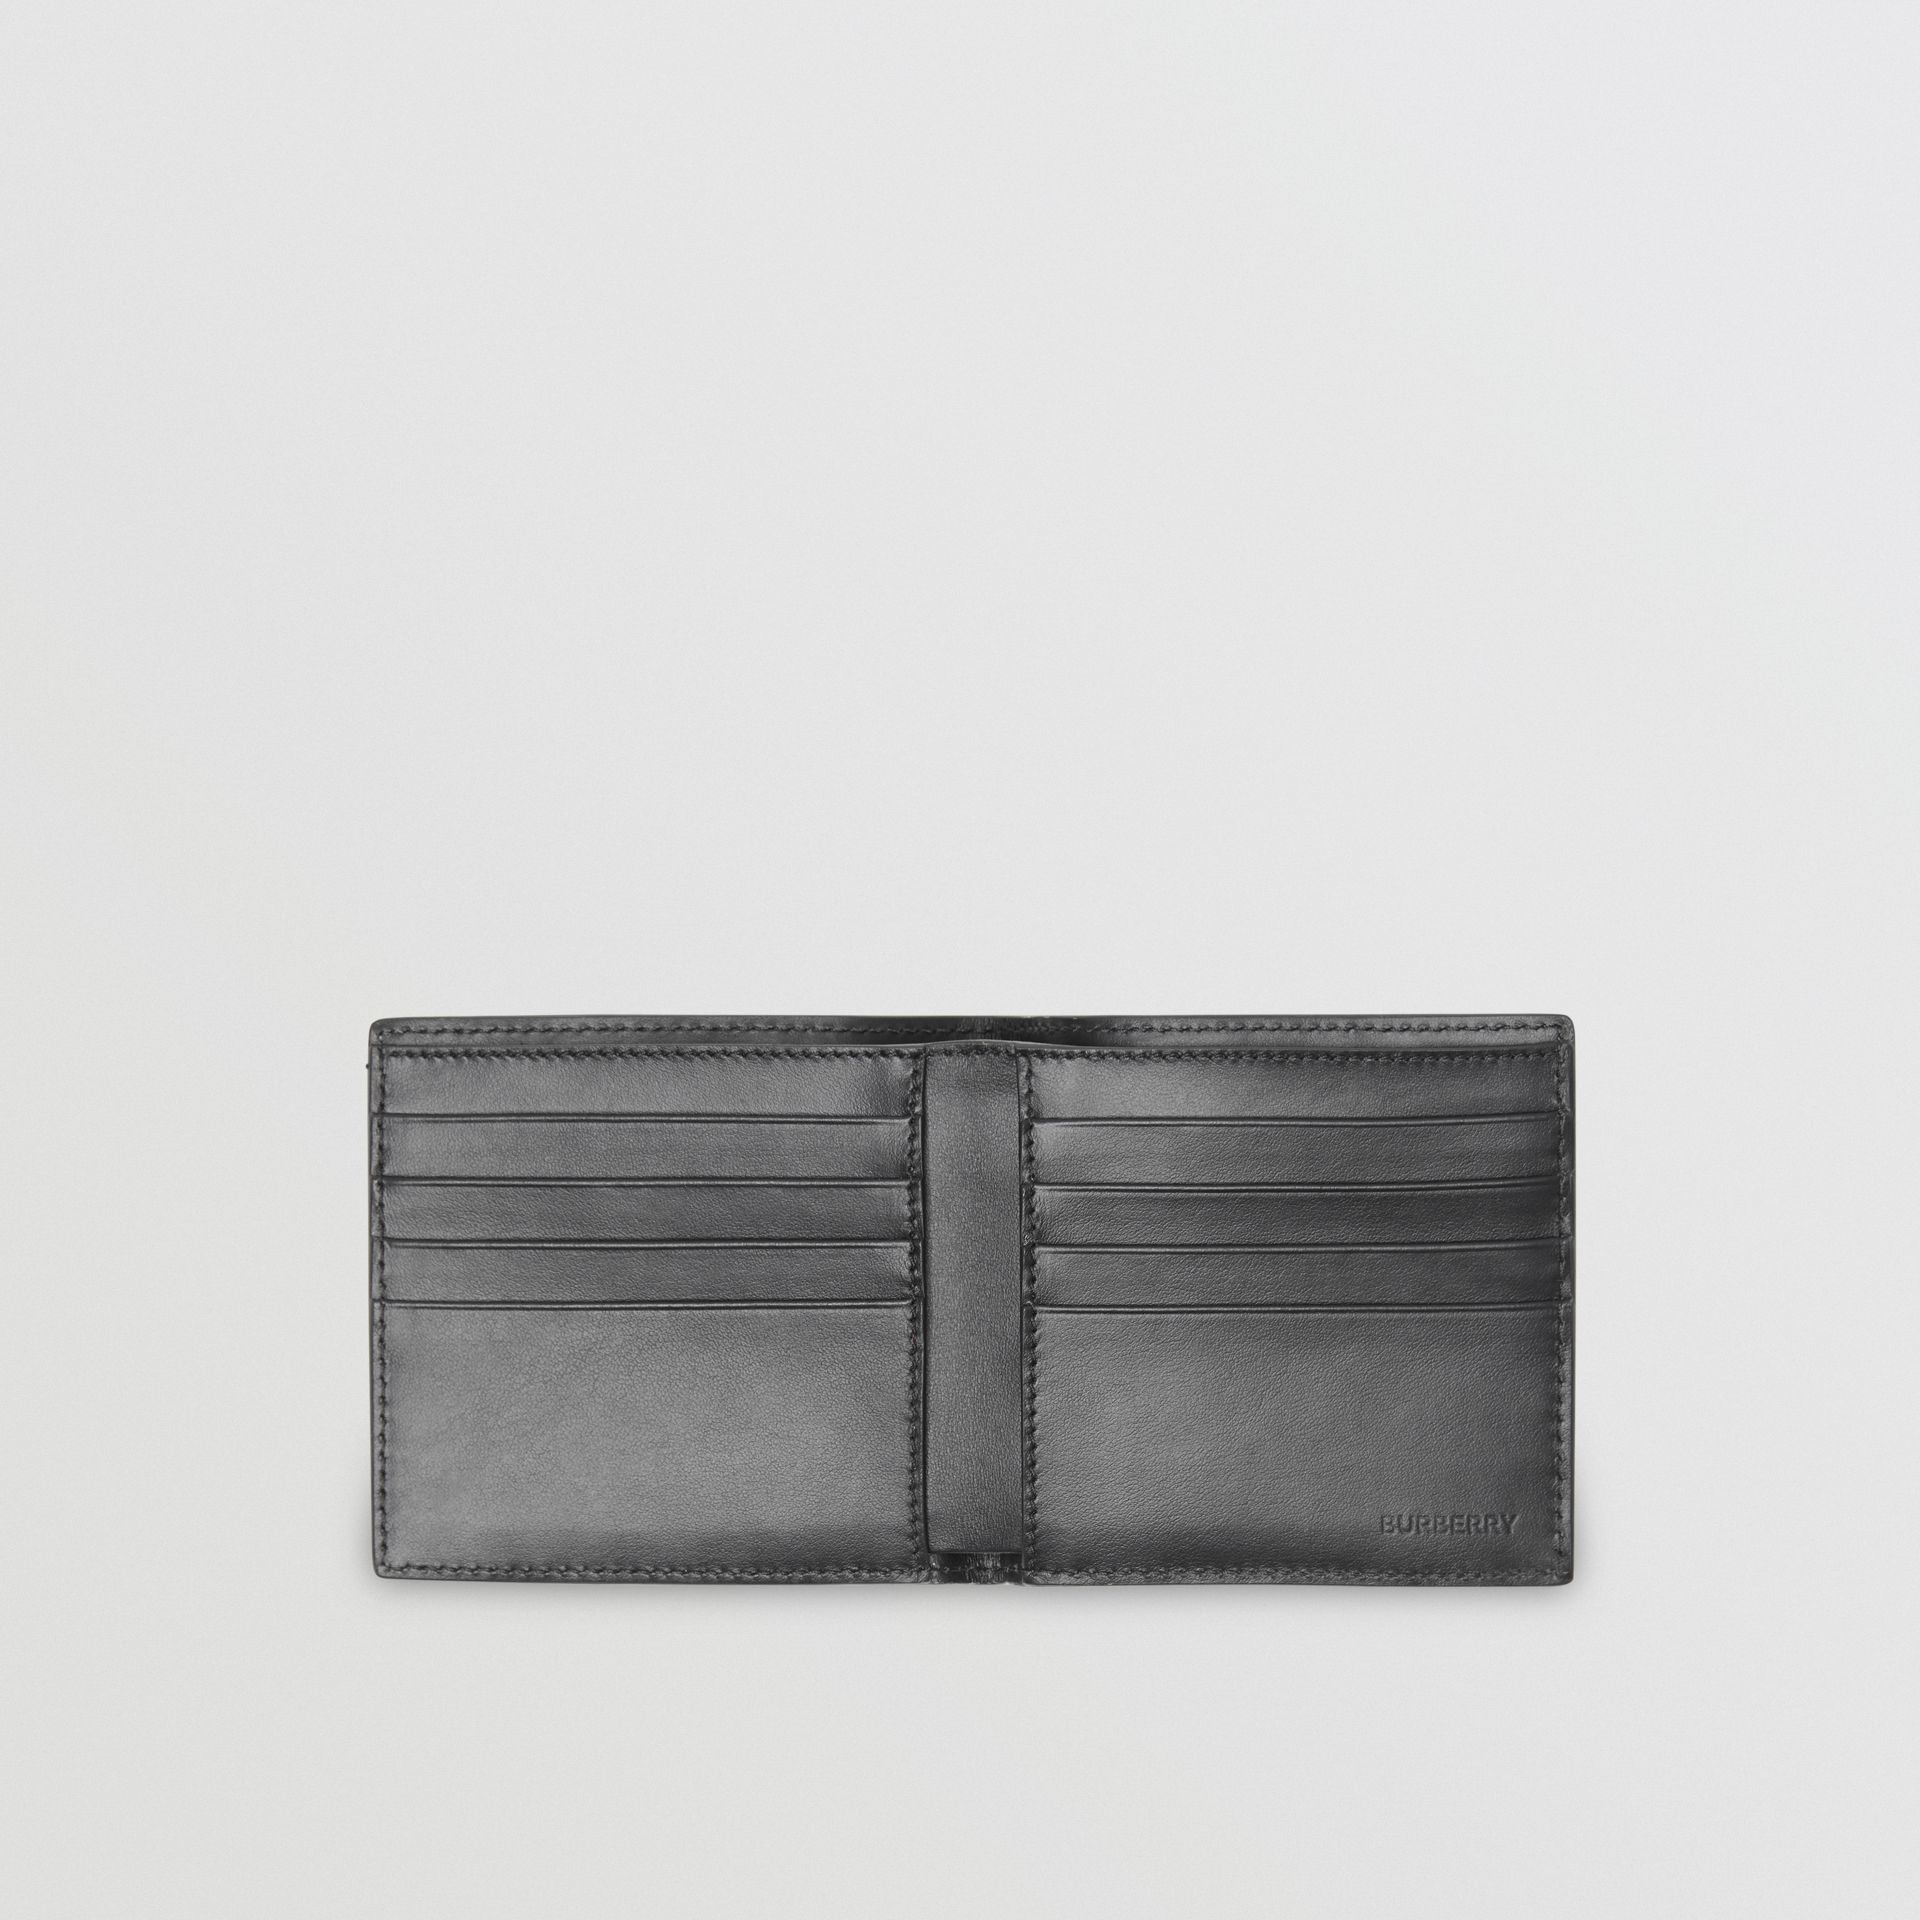 Monogram Leather International Bifold Wallet in Black - Men | Burberry Australia - gallery image 3